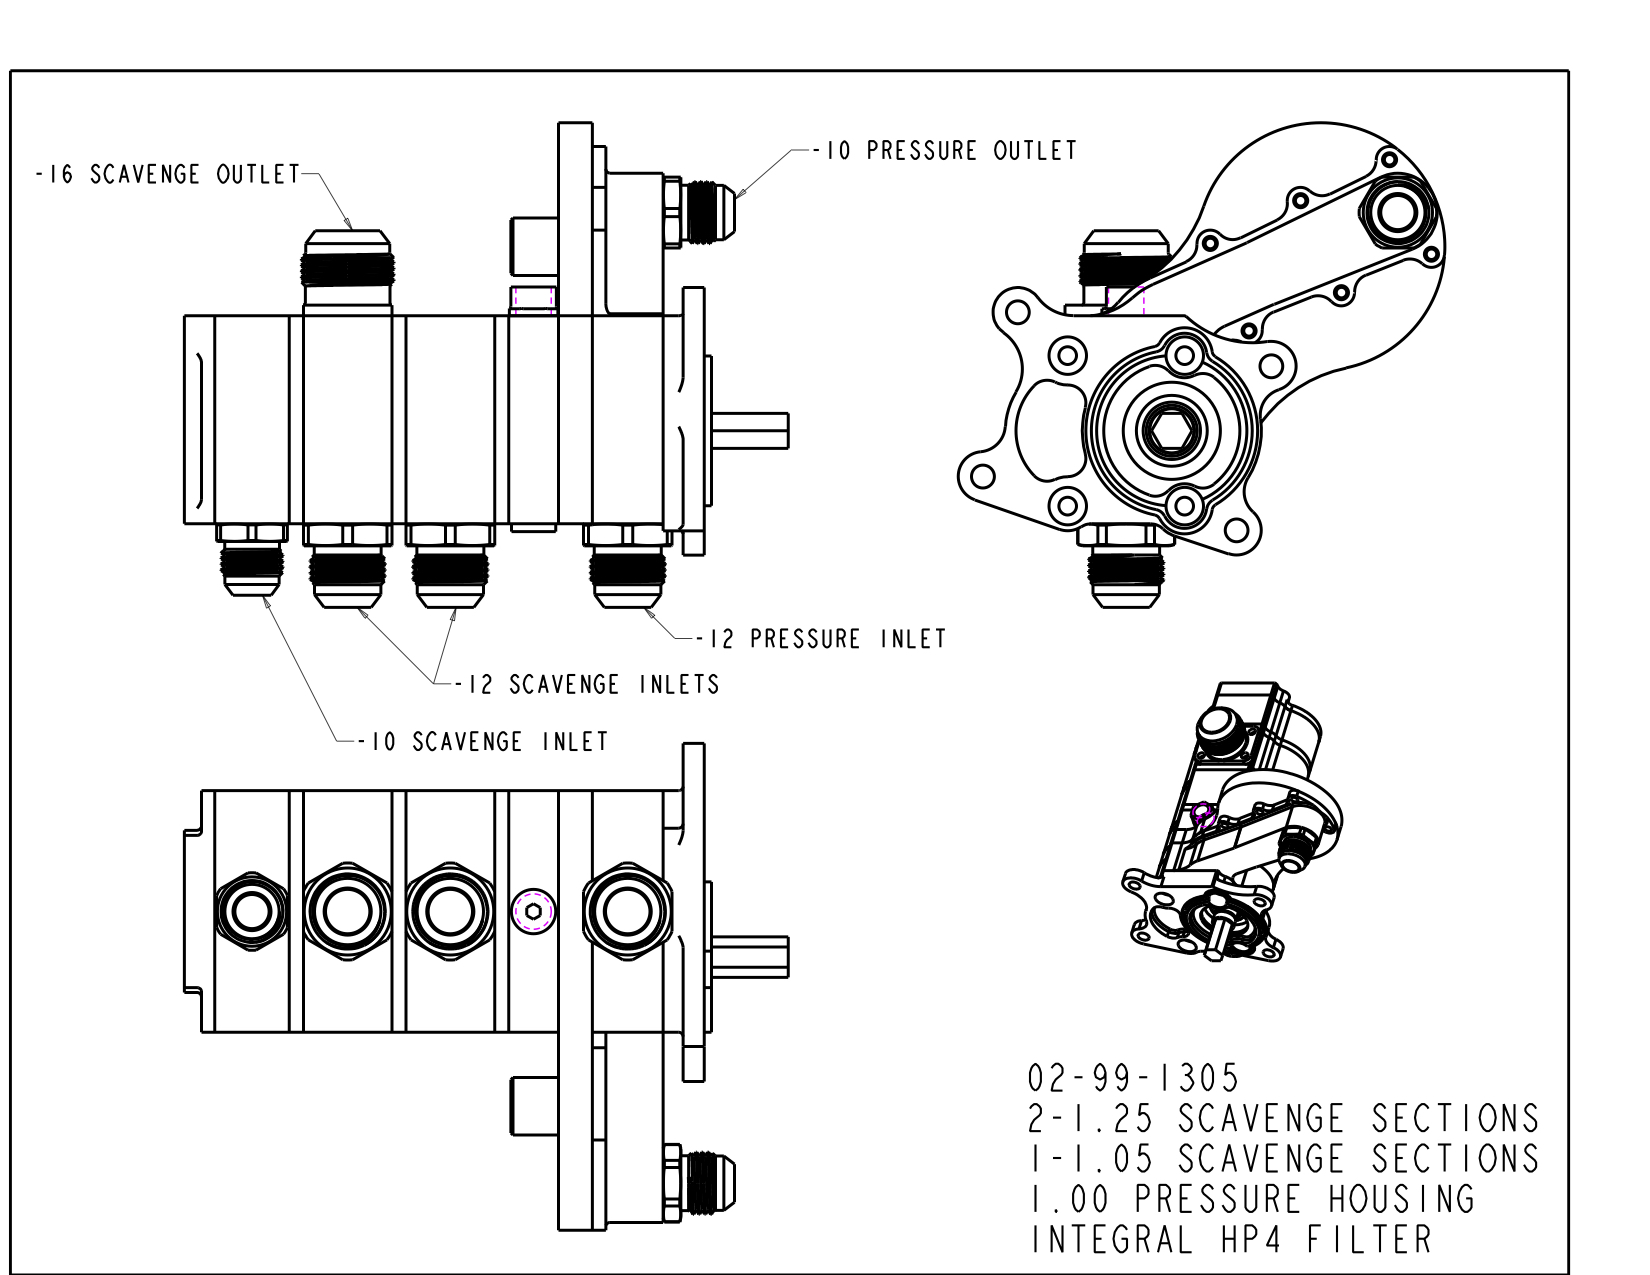 Racing Wiring Harness Auto Electrical Diagram 1991 Plymouth Acclaim Engine People Also Interest With